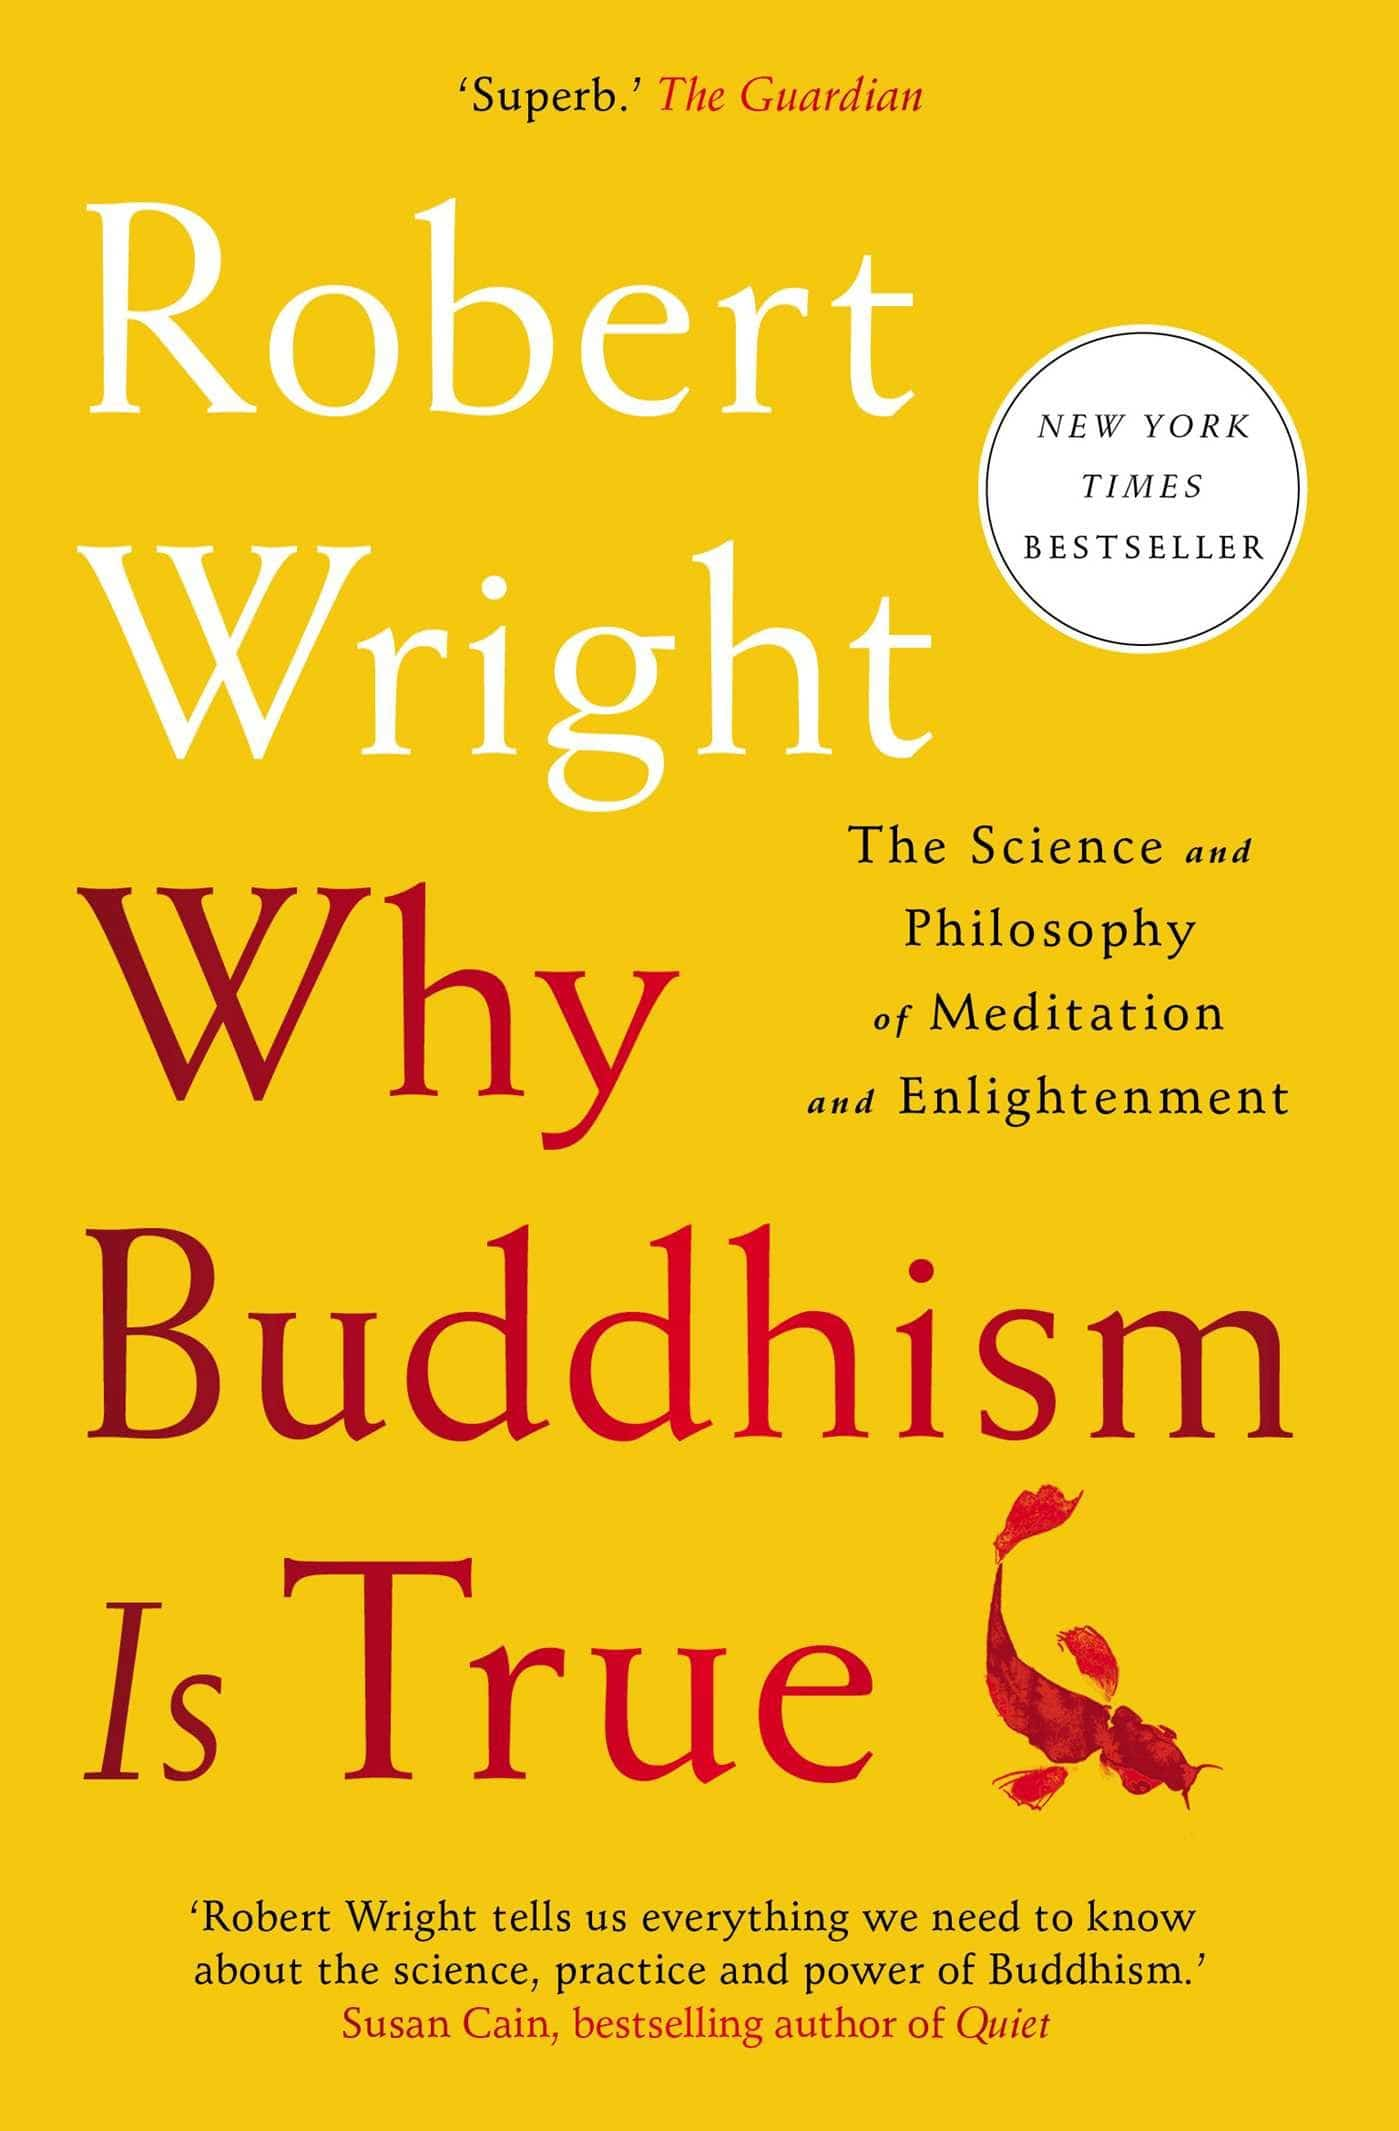 The cover of Why Buddhism is True